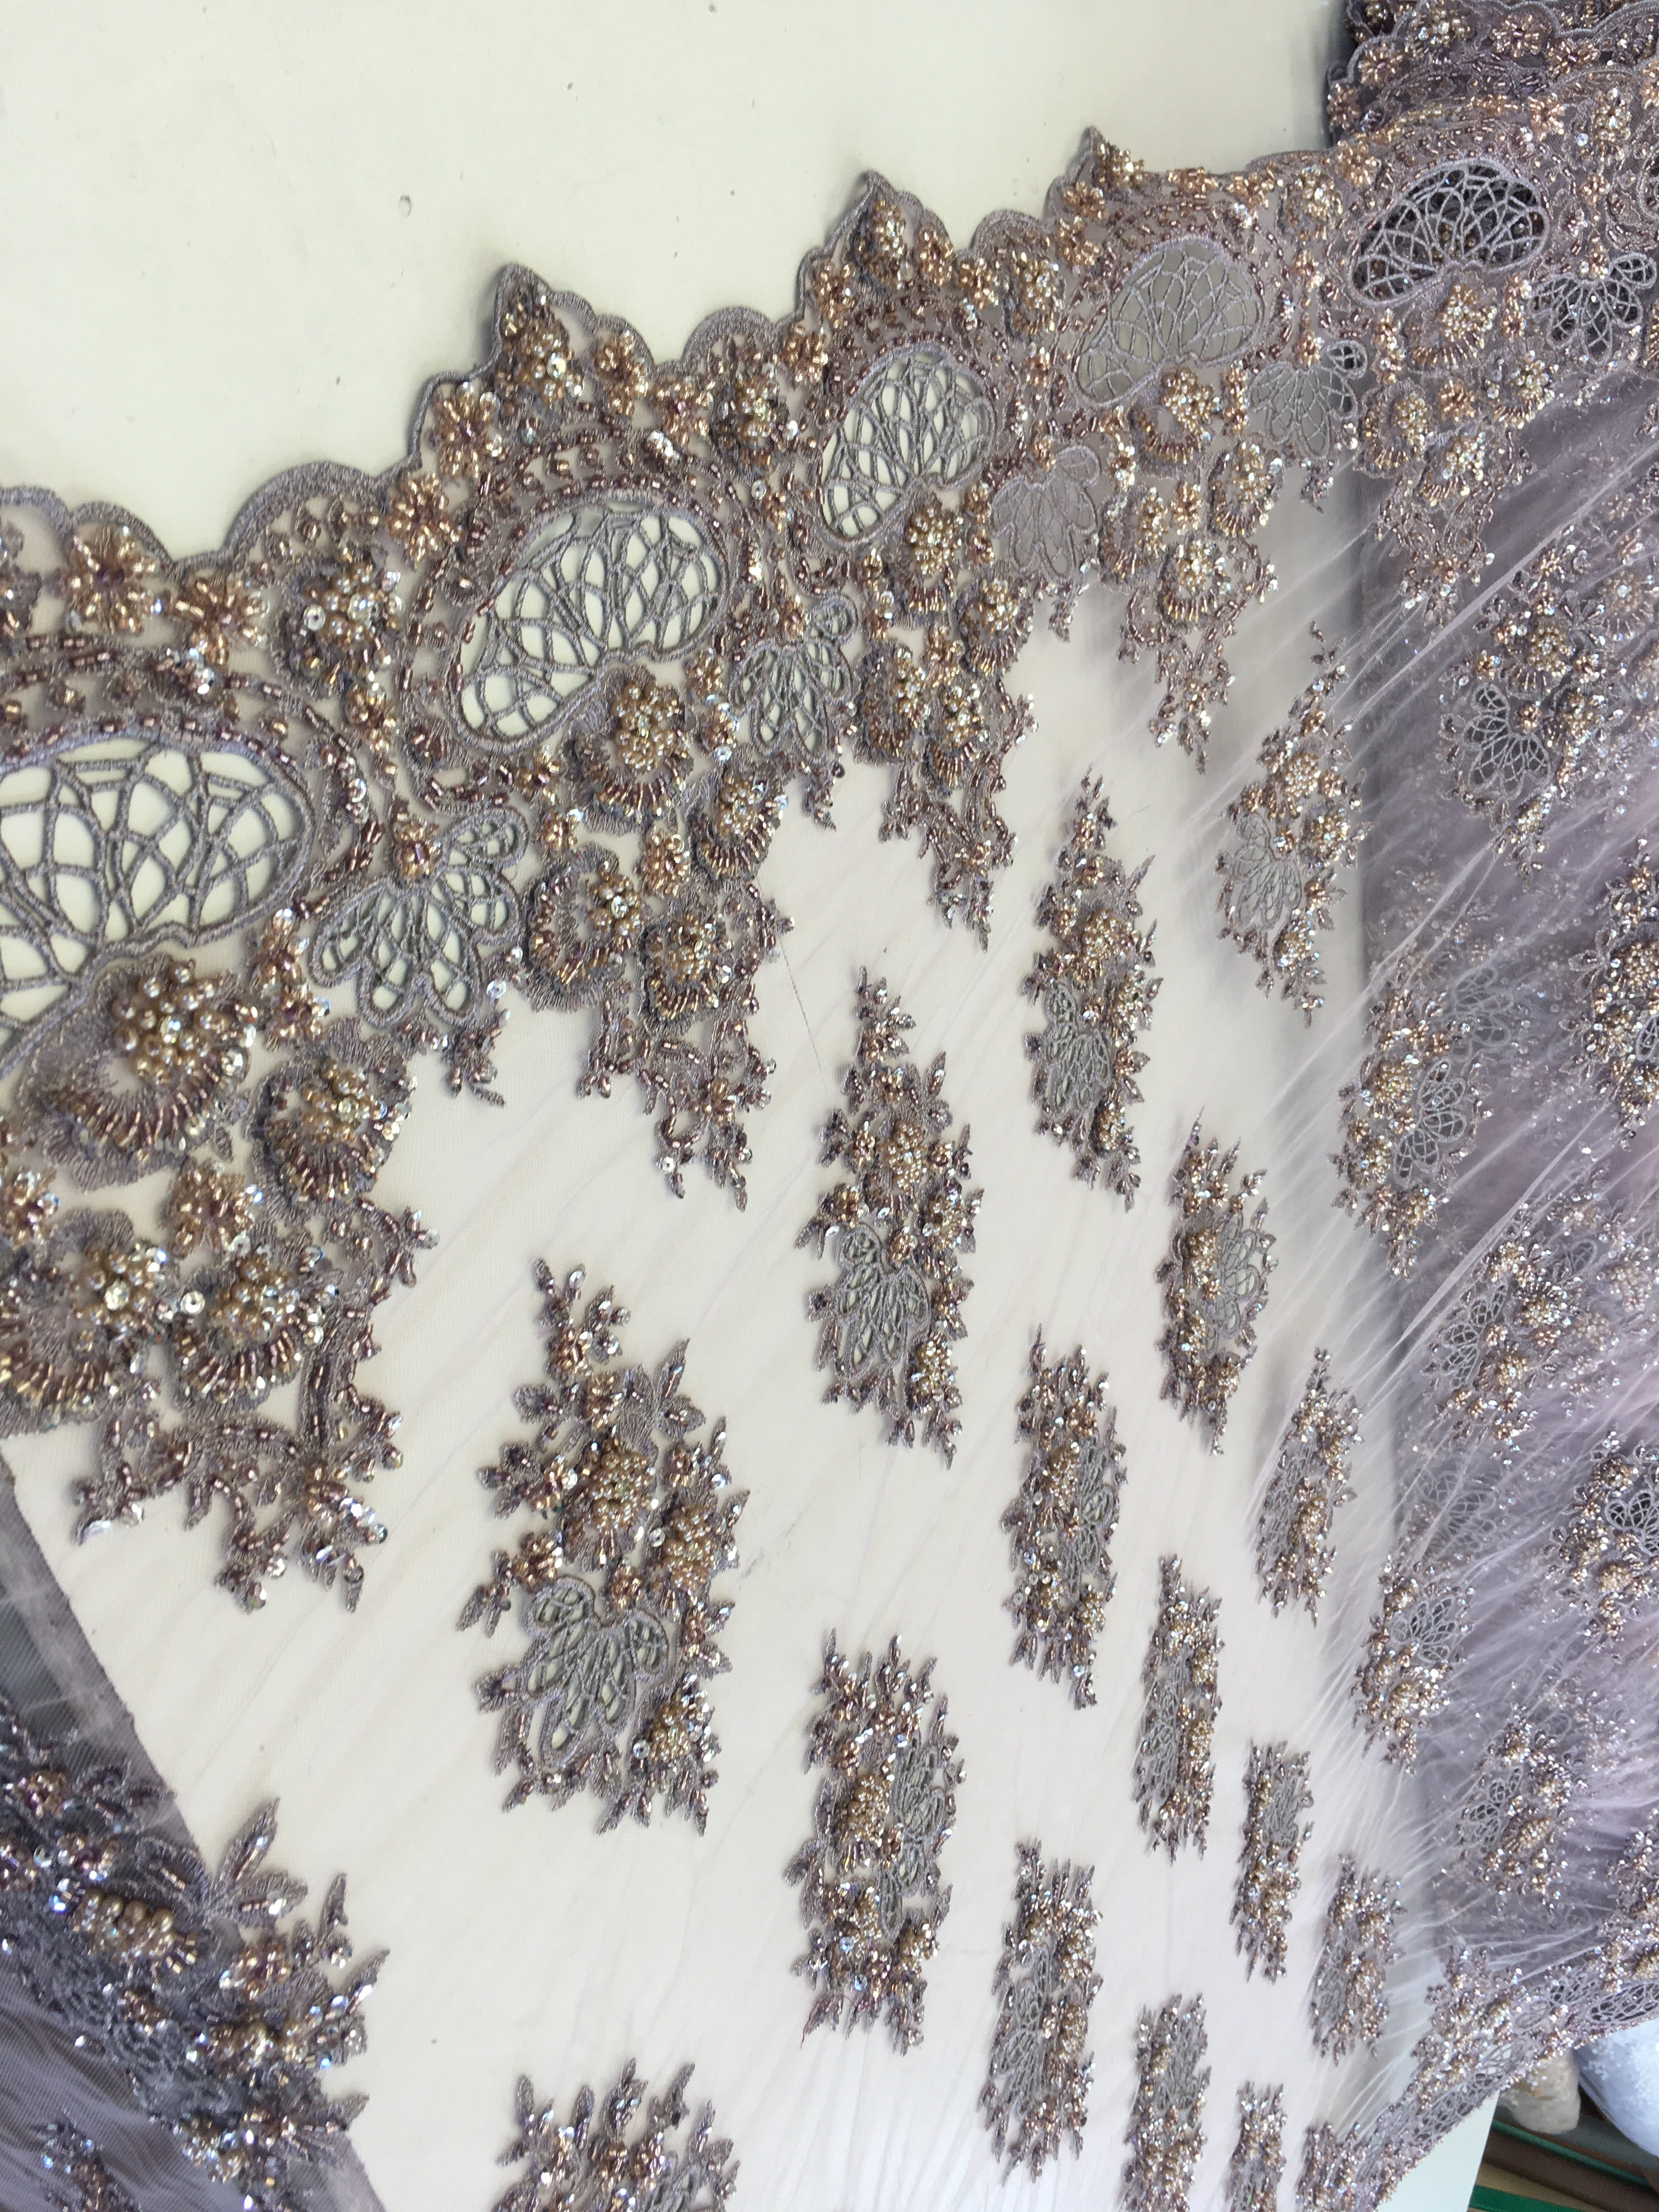 Zohar Designs Beaded Mesh Lace Lavender/Lilac Beaded Fabric Lace Fabric By The Yard Embroider Beaded On A Mesh For Bridal Veil